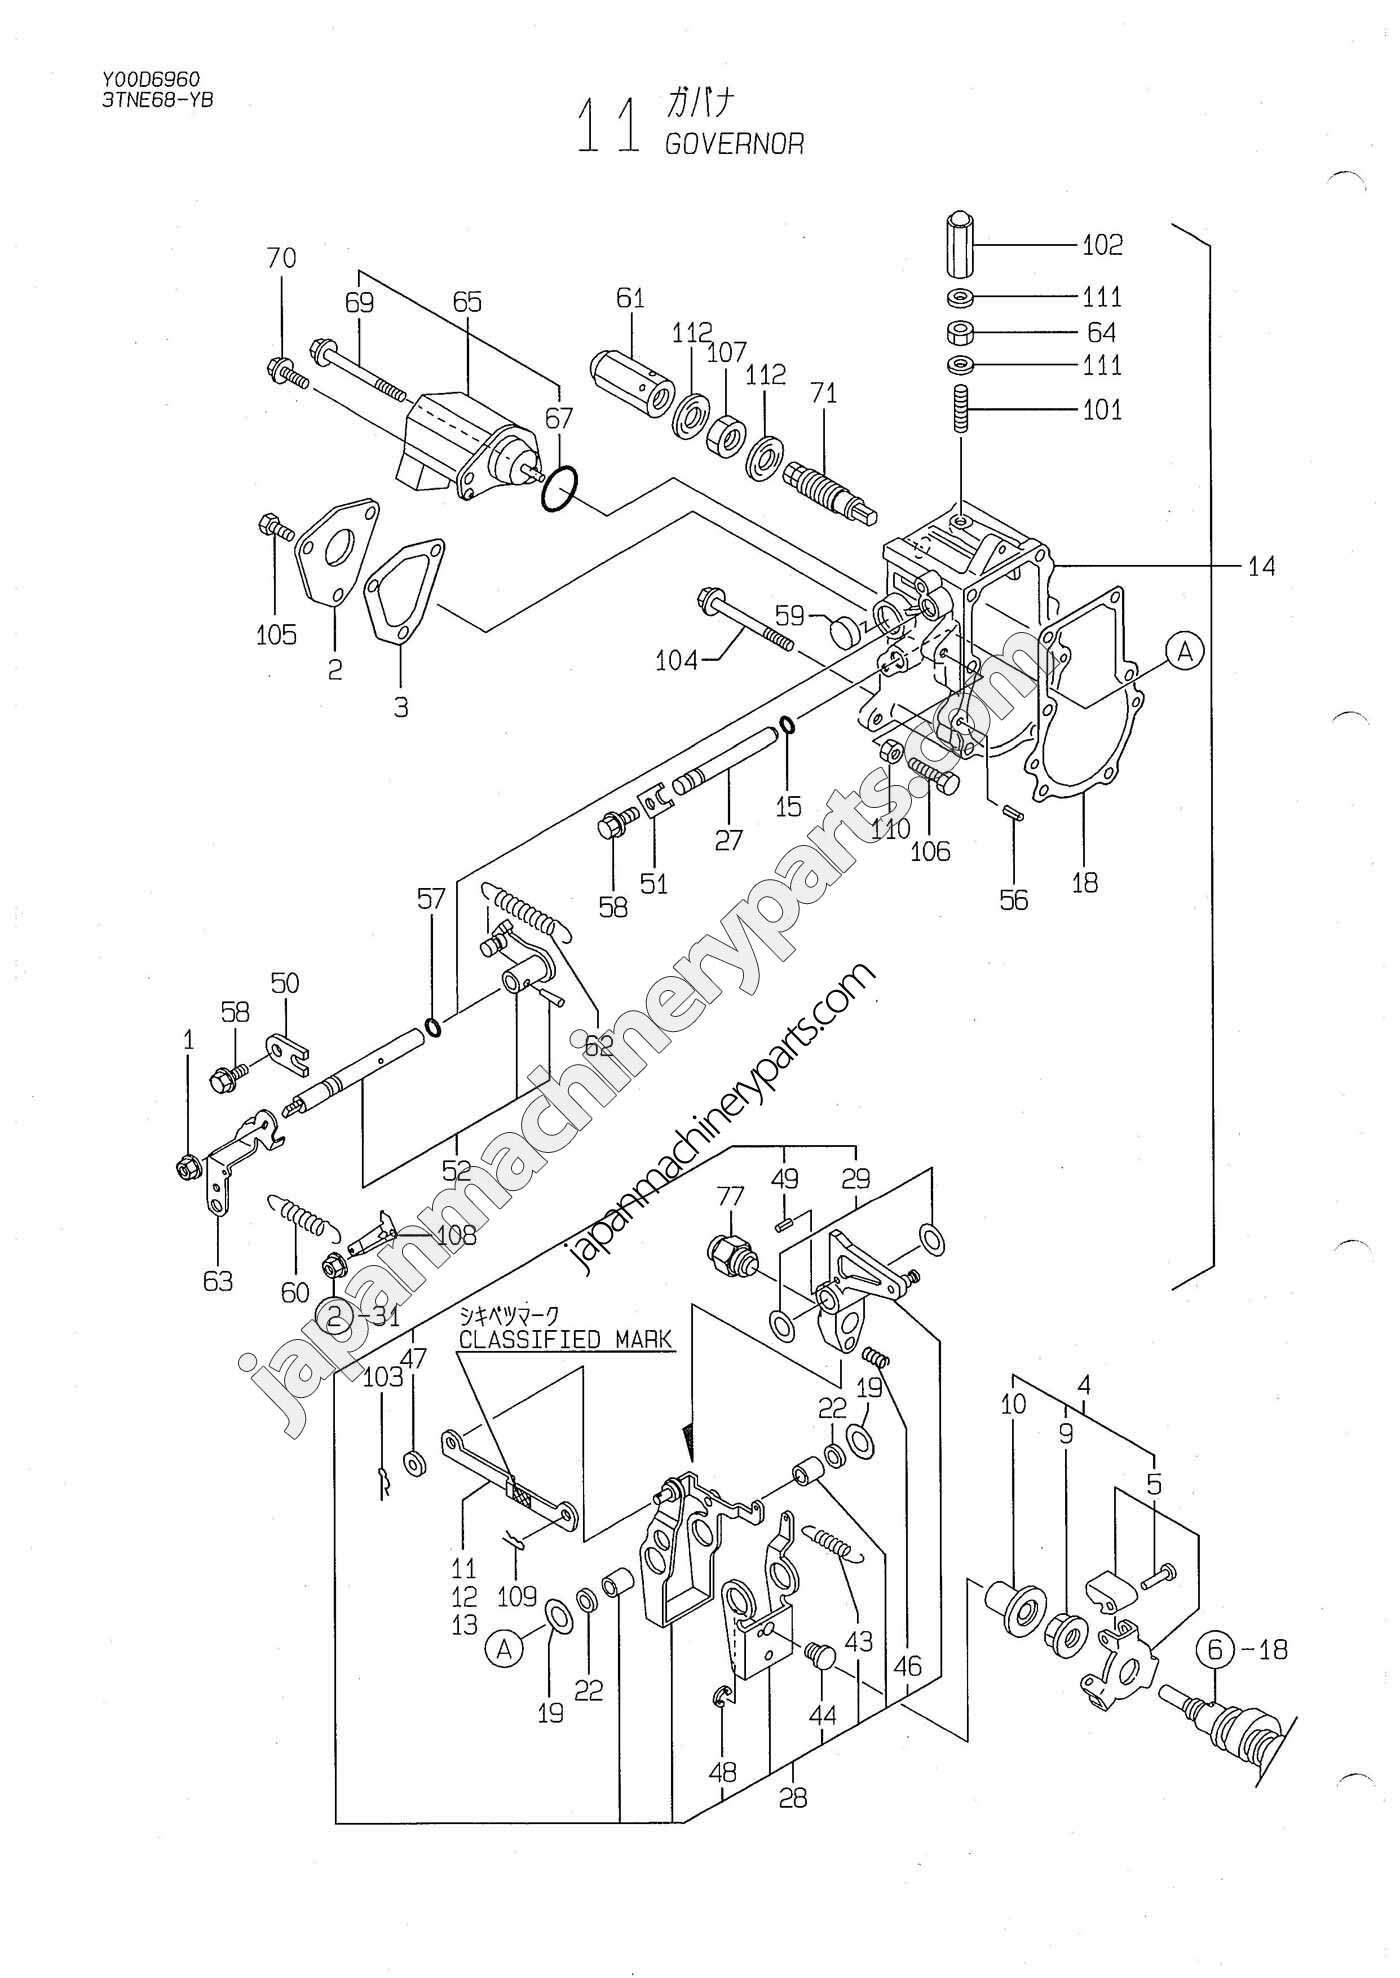 kato generator wiring diagrams wiring solutions electrical wiring diagrams for dummies caterpillar g3512na 390bkw natural gas pioneer deh 44hd wiring